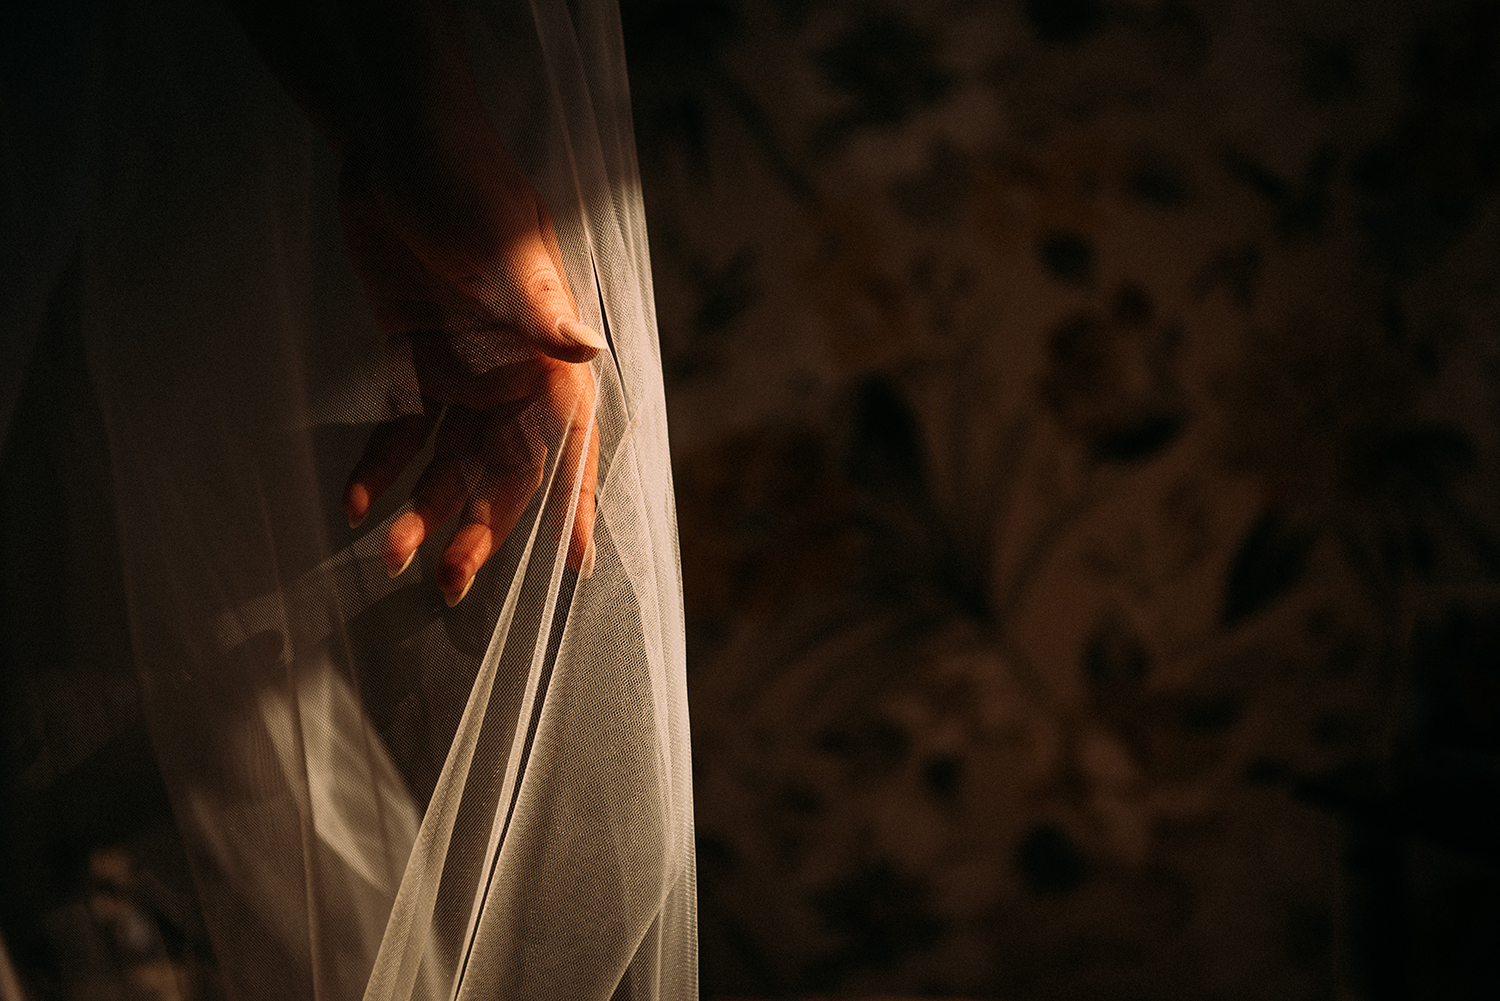 brides hand under the veil in nice sunlight